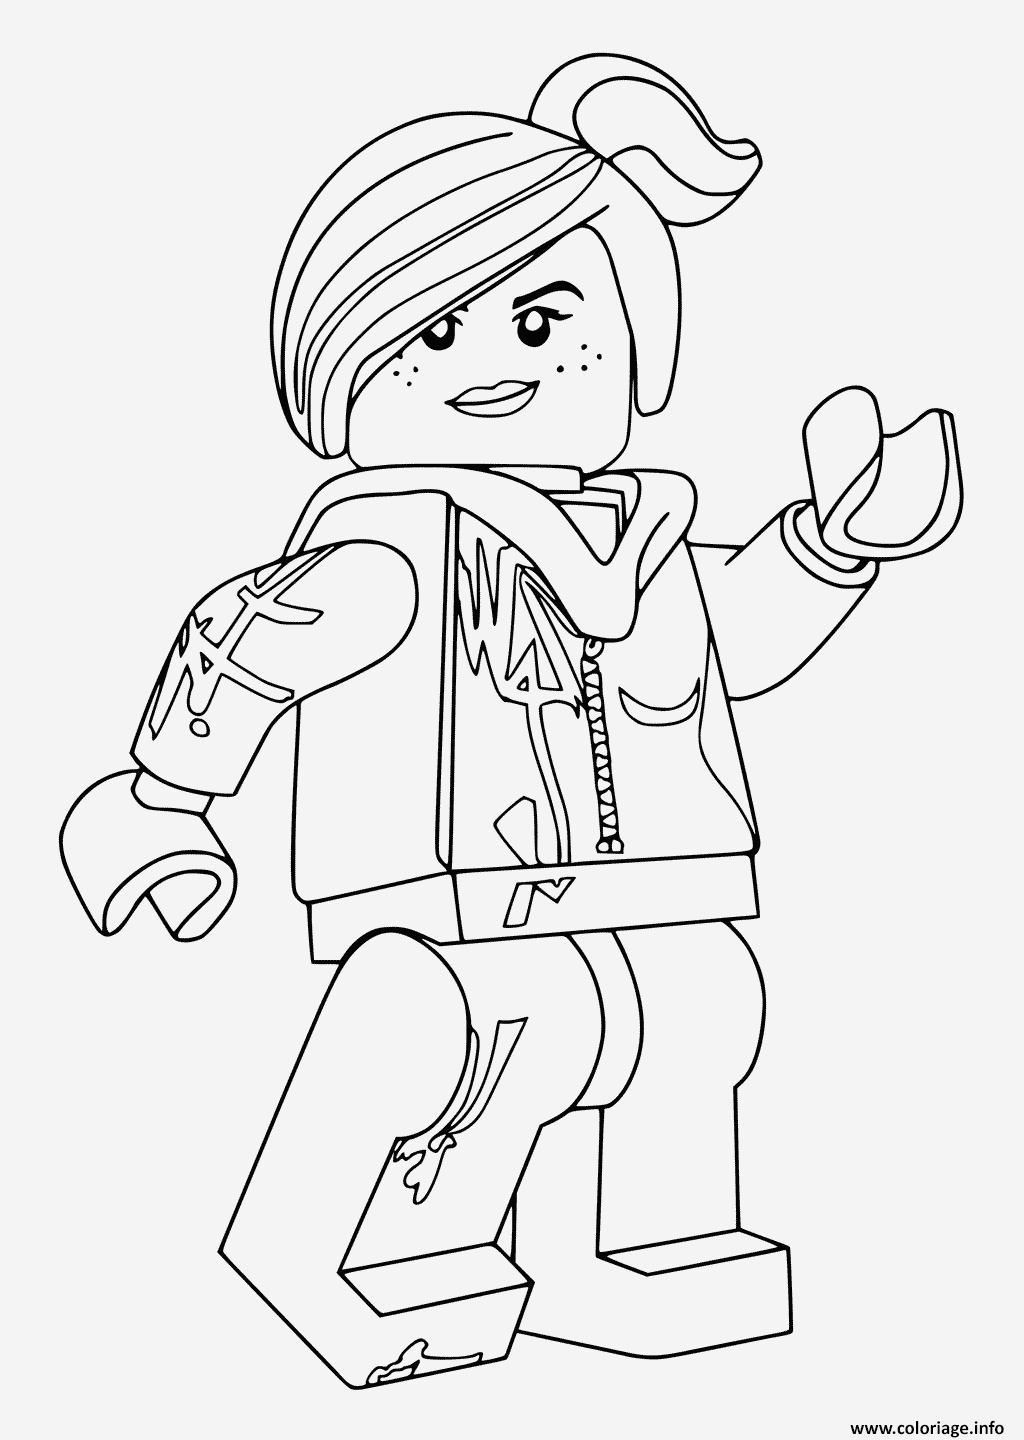 Coloriage Lego Star Wars New Hd Wallpapers Coloriage Lego Star Wars En Ligne Sweet Love Of Coloriage Lego Star Wars